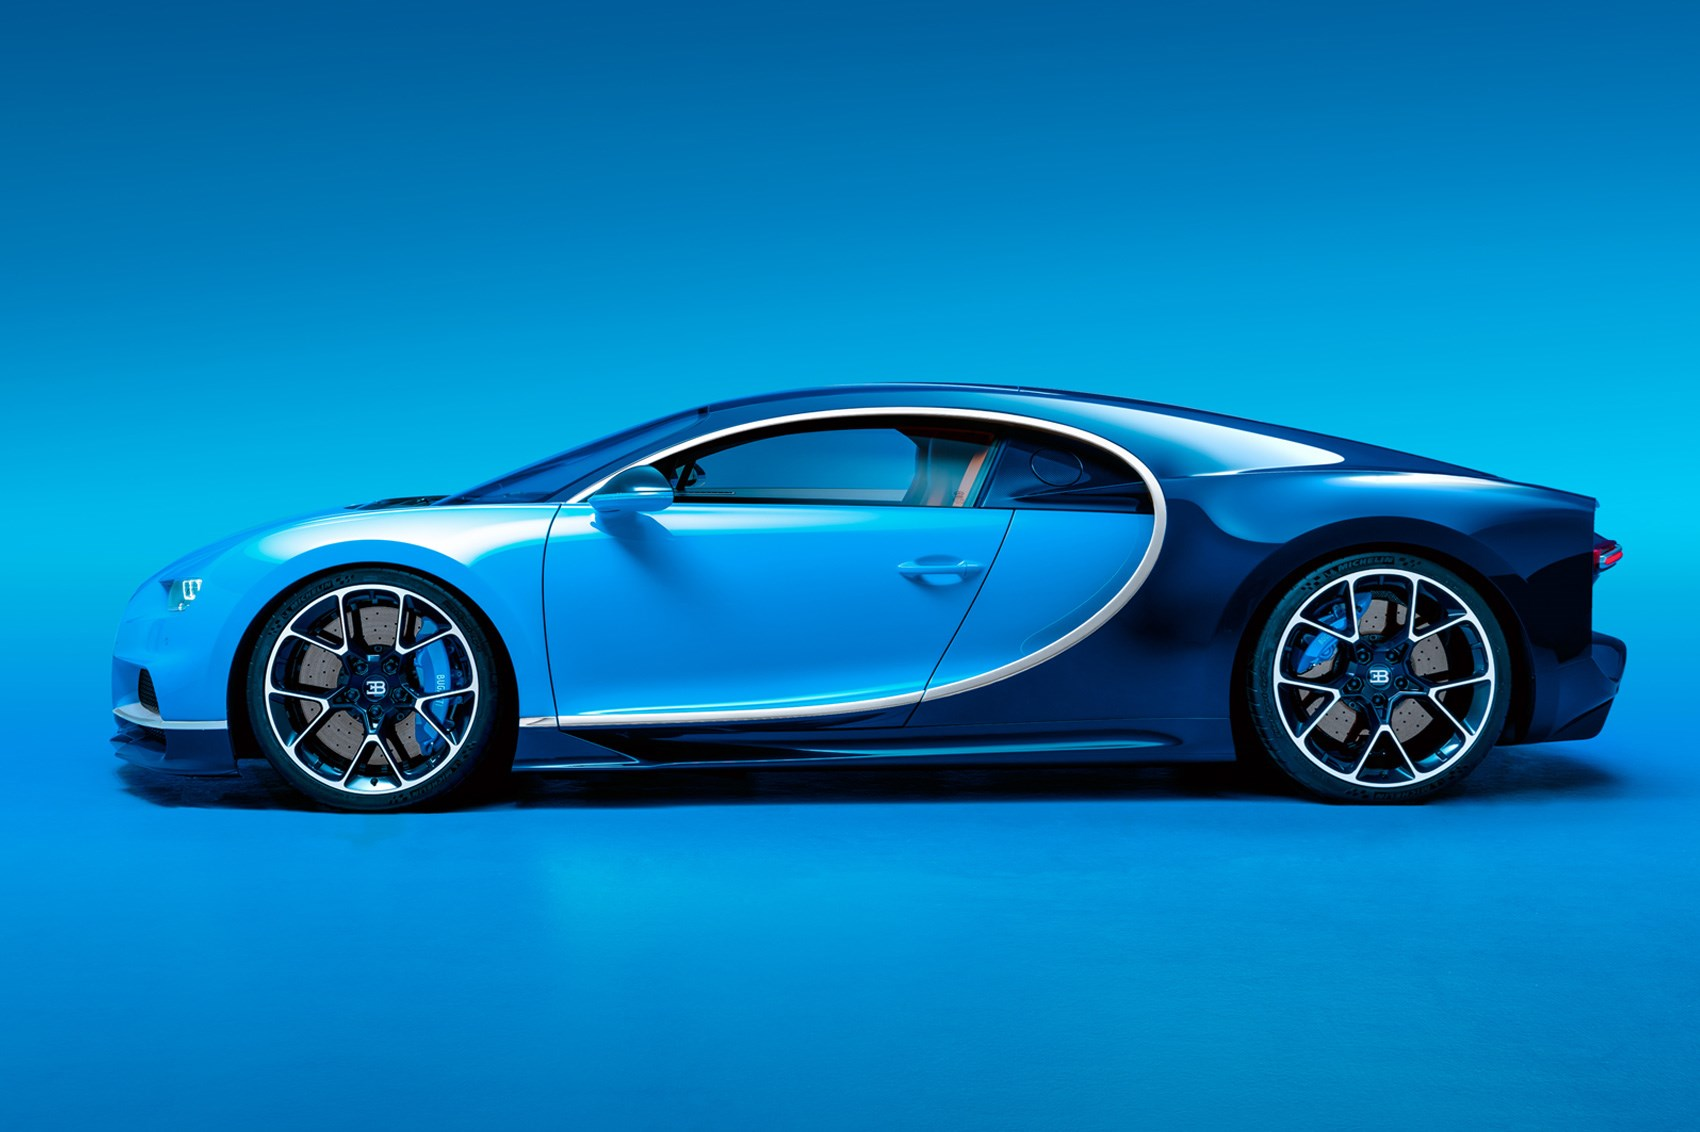 Bugatti Chiron 2016 - now Coupe :: OUTSTANDING CARS on hupmobile coupe, isuzu coupe, citroen coupe, mgb coupe, audi coupe, mazda coupe, bentley coupe, hudson coupe, cord coupe, rolls-royce ghost coupe, bmw coupe, aston martin coupe, maybach coupe, subaru coupe, lincoln coupe, lamborghini coupe, ferrari coupe, lotus coupe, lexus coupe, fisker coupe,